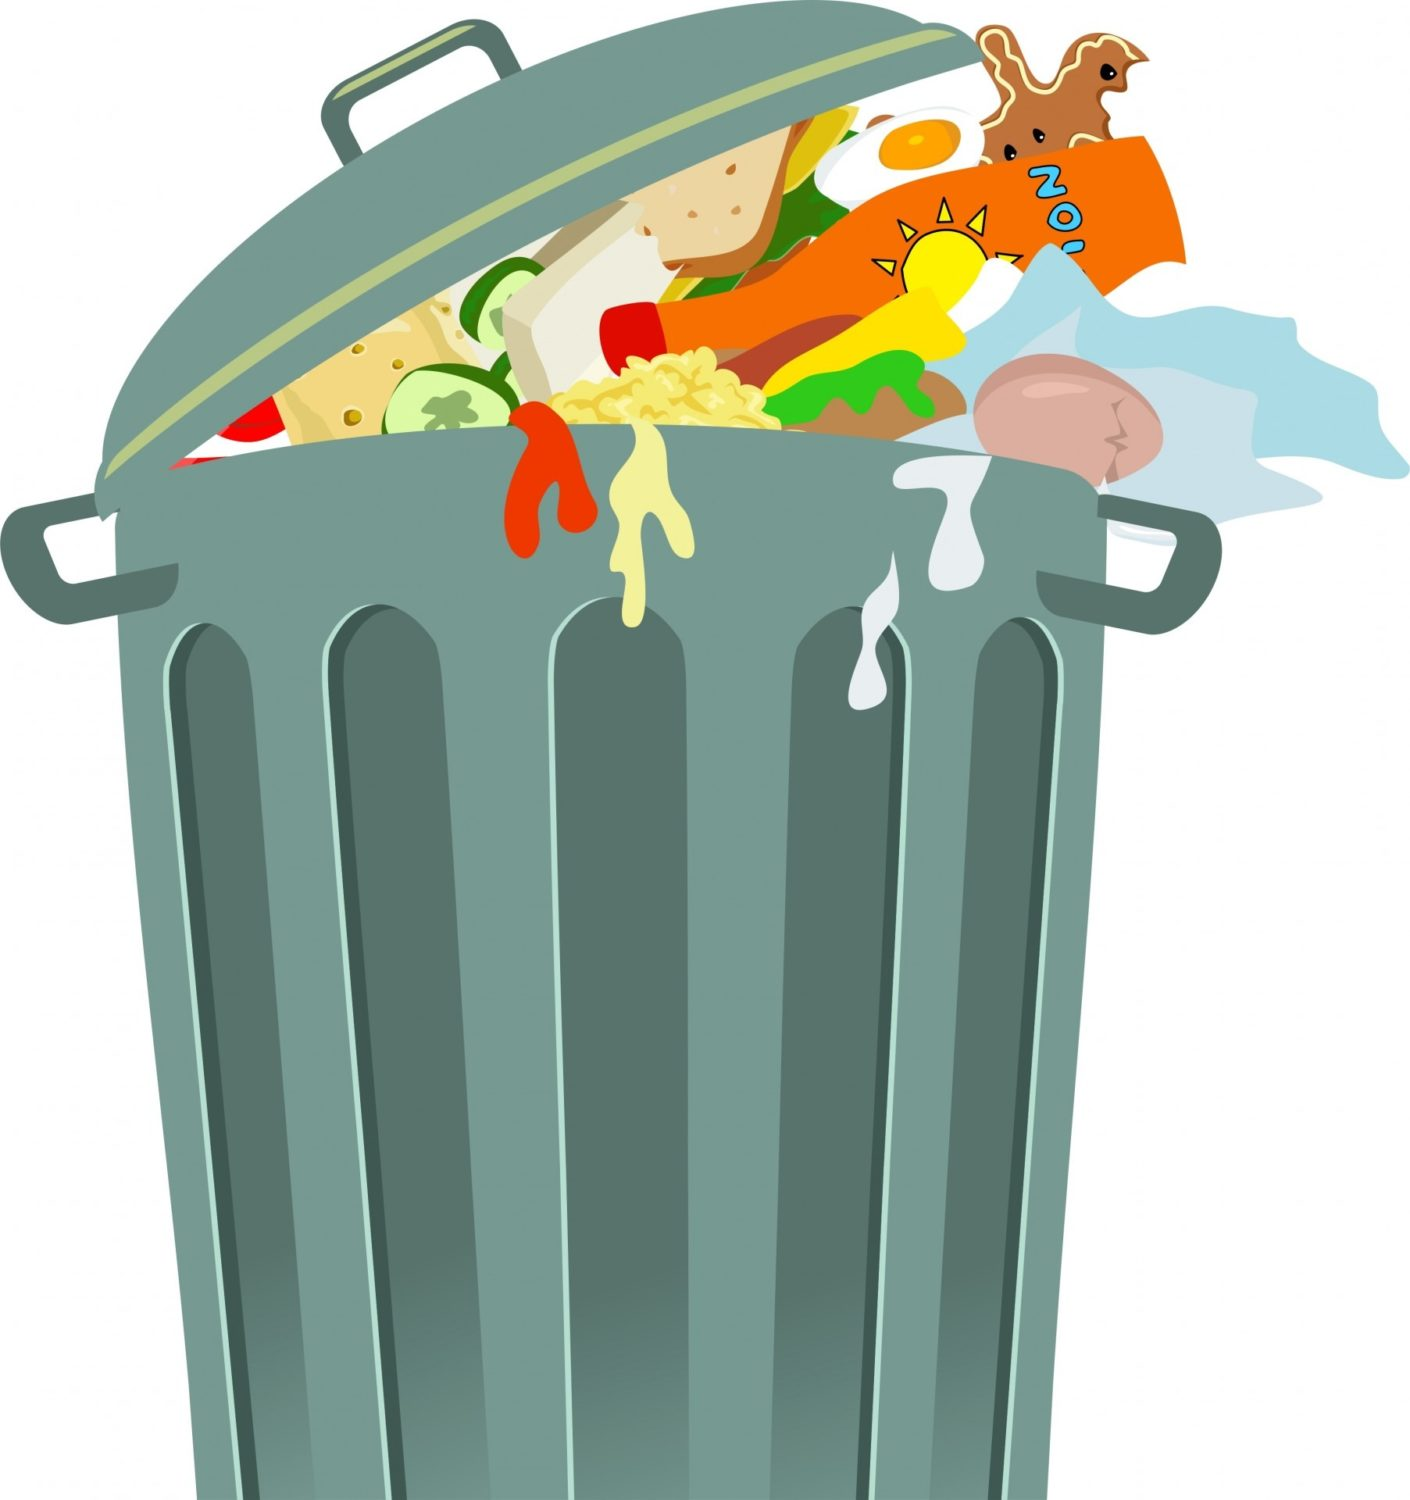 trash can clip art free stock photo public domain pictures within rh healthyjaime com clipart trash can trash clip art free